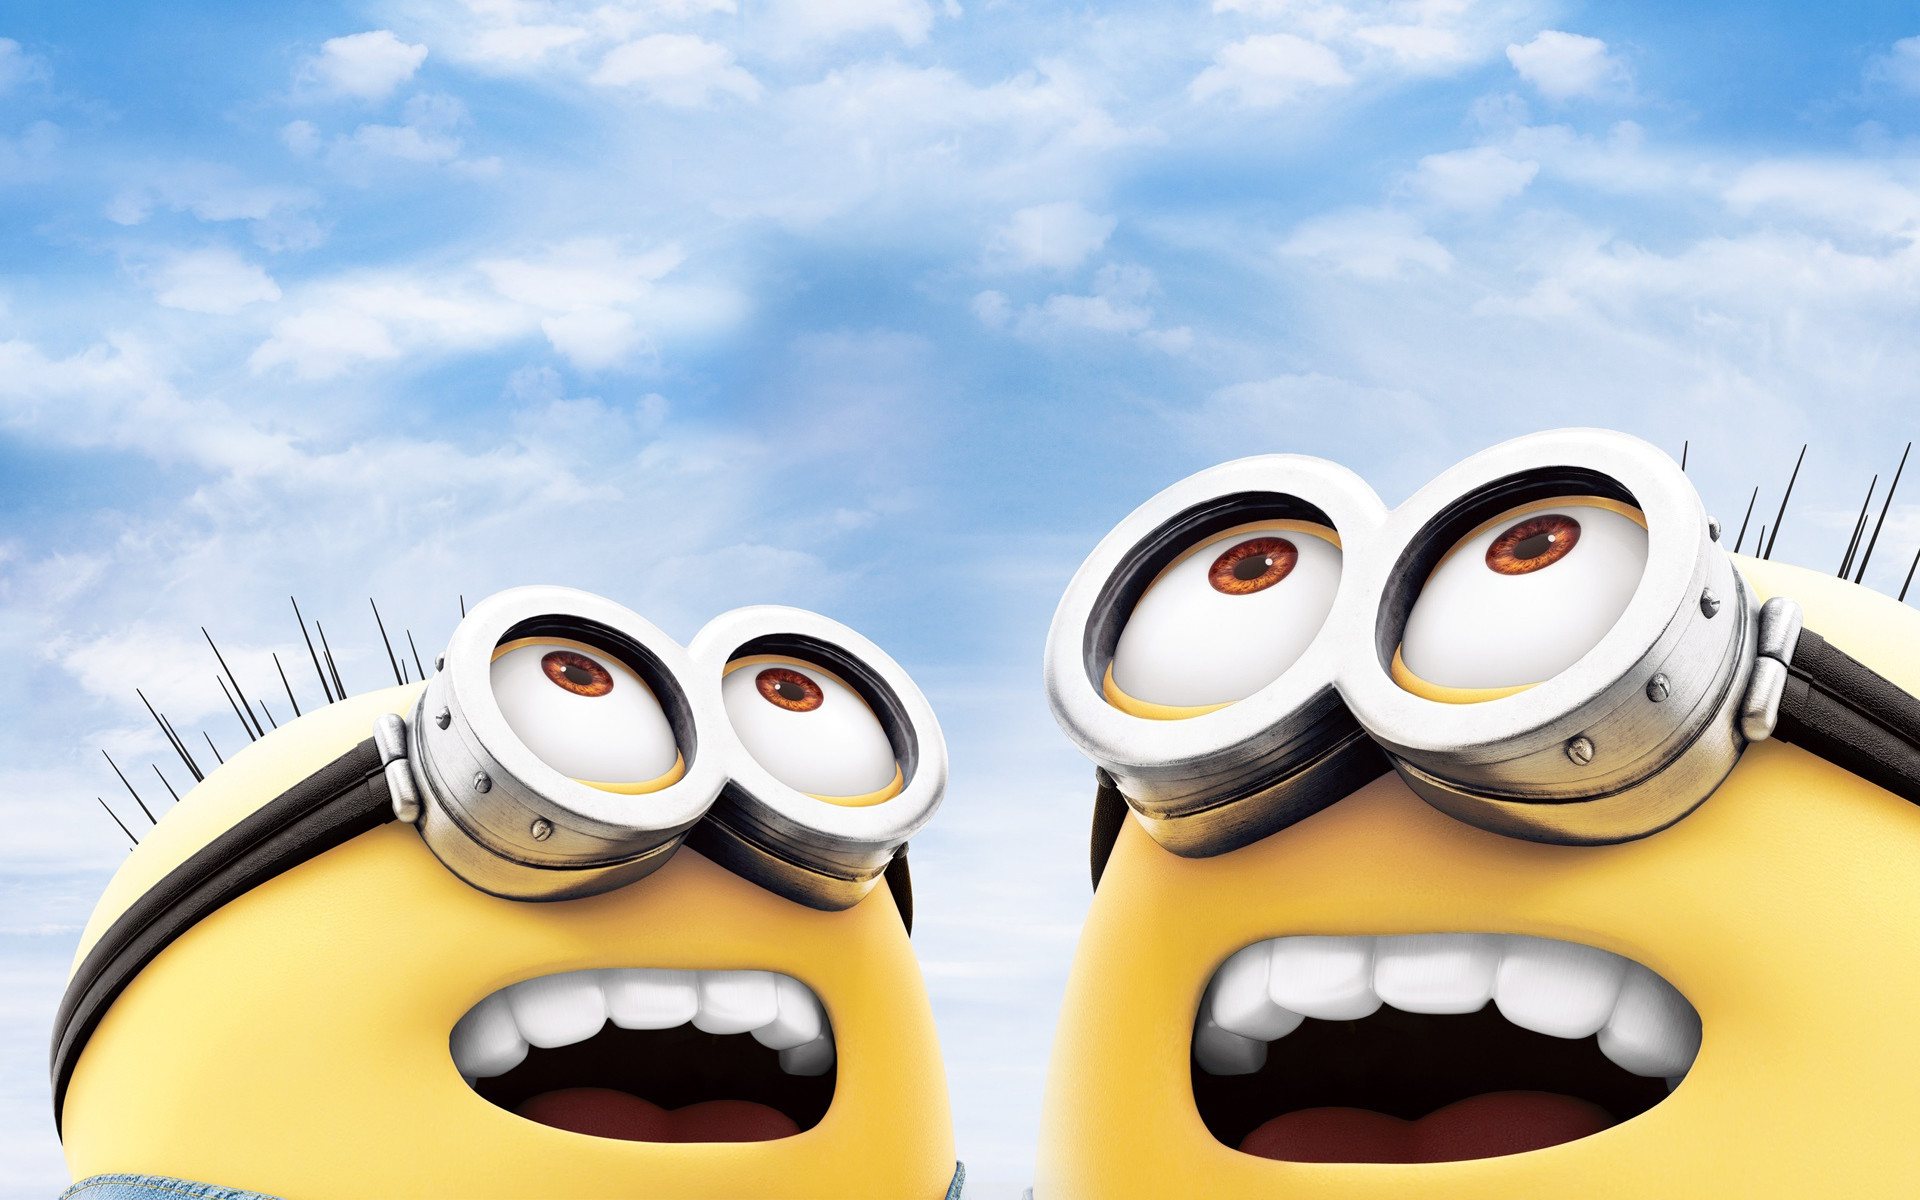 1920x1200 Minions laughing Desktop Wallpaper.